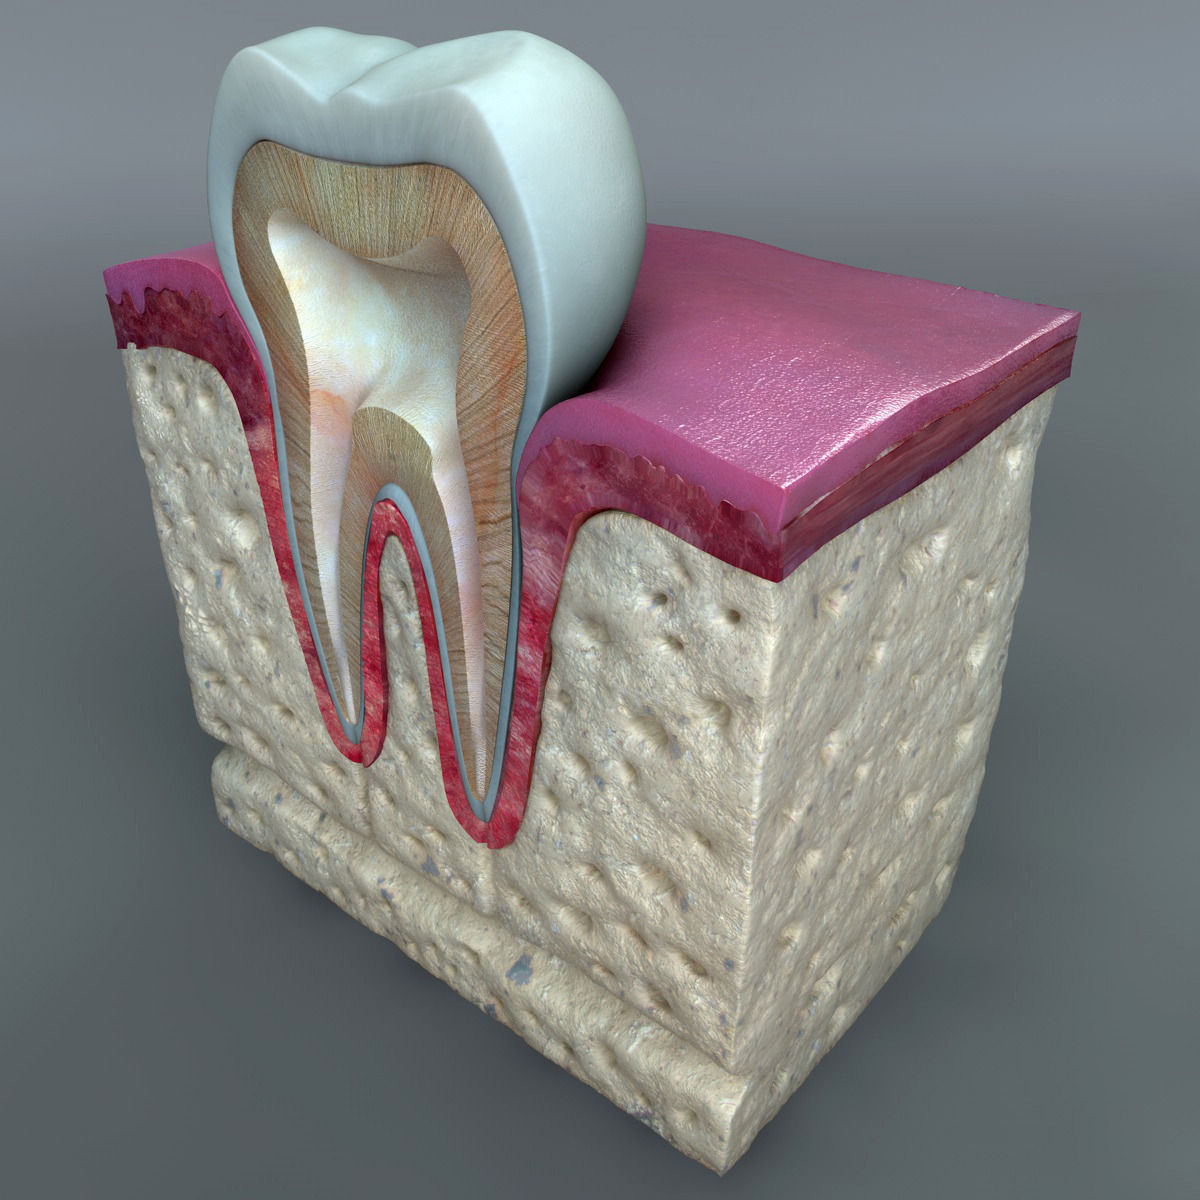 Tooth diagram 3d electrical work wiring diagram 3d teeth diagram cgtrader rh cgtrader com tooth diagram worksheet tooth diagram labeling ccuart Images